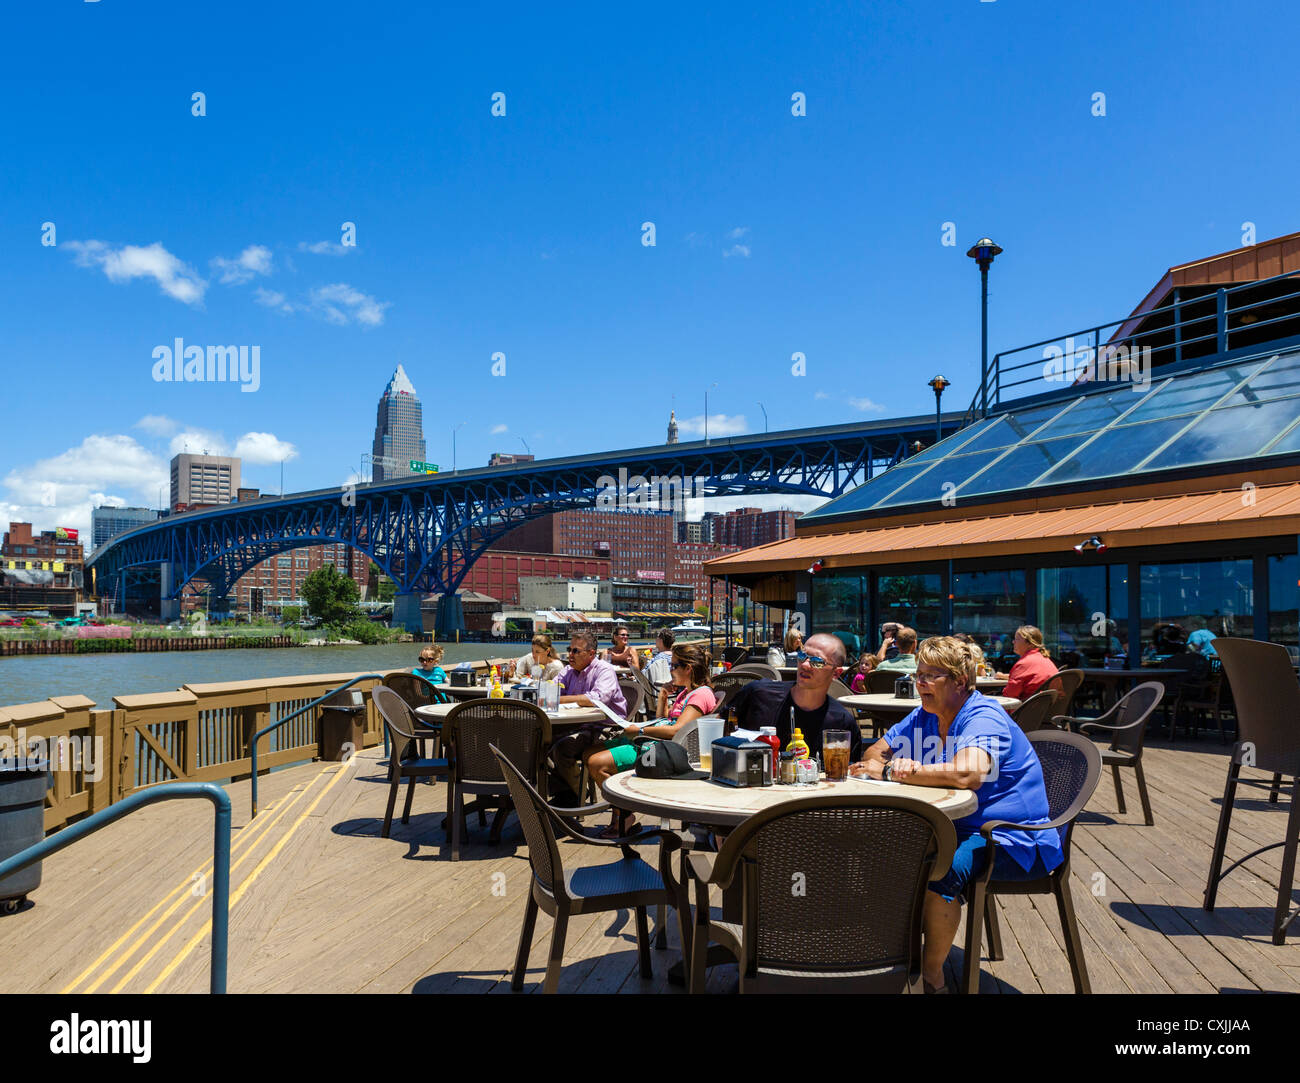 Shooters bar and restaurant on the banks of the Cuyahoga River in the Flats district, Cleveland, Ohio, USA - Stock Image